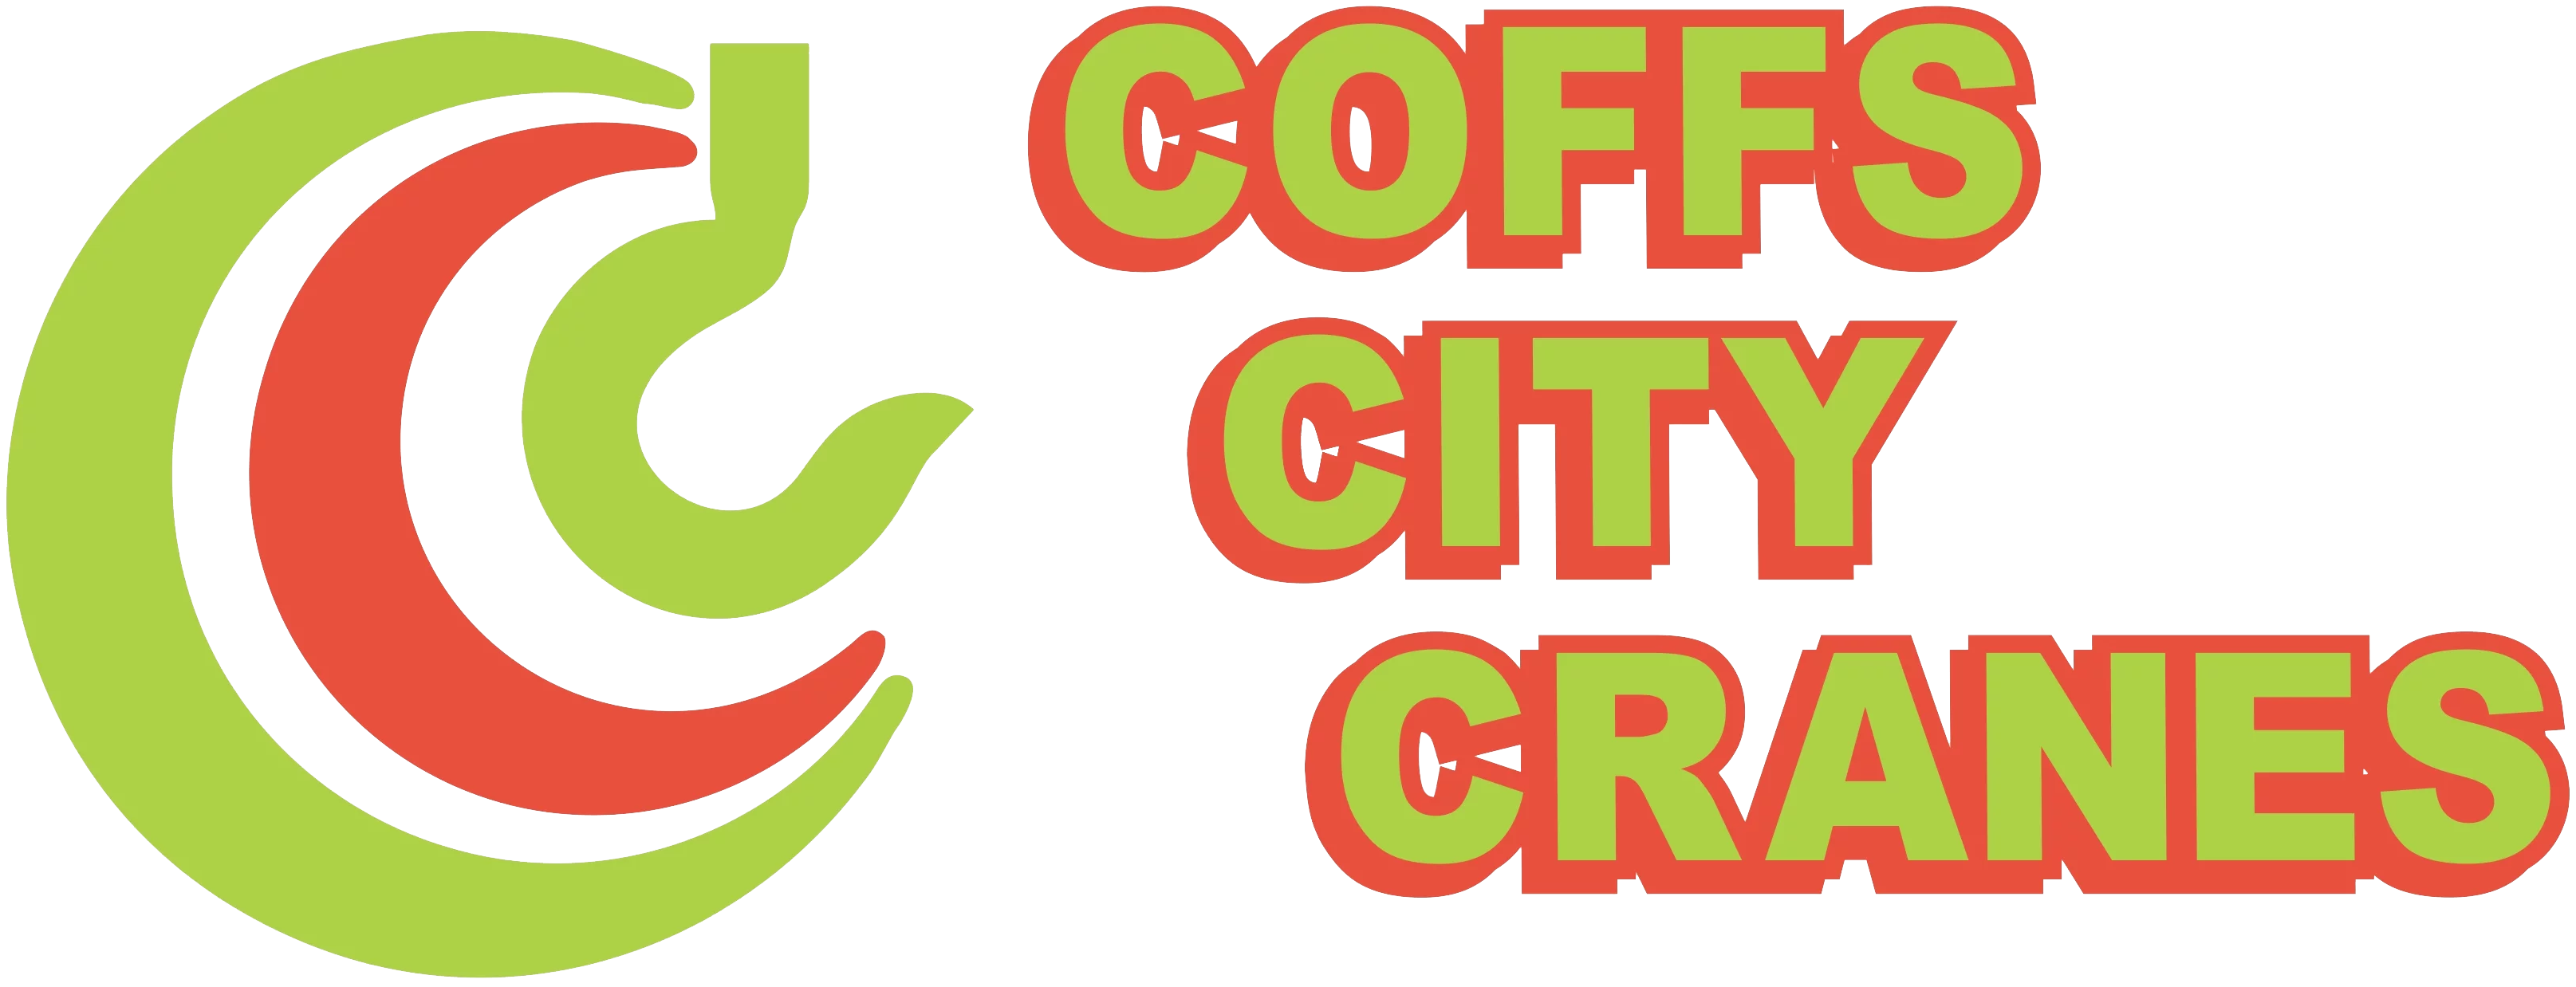 Coffs-City-Cranes-_-Rigging-Logo